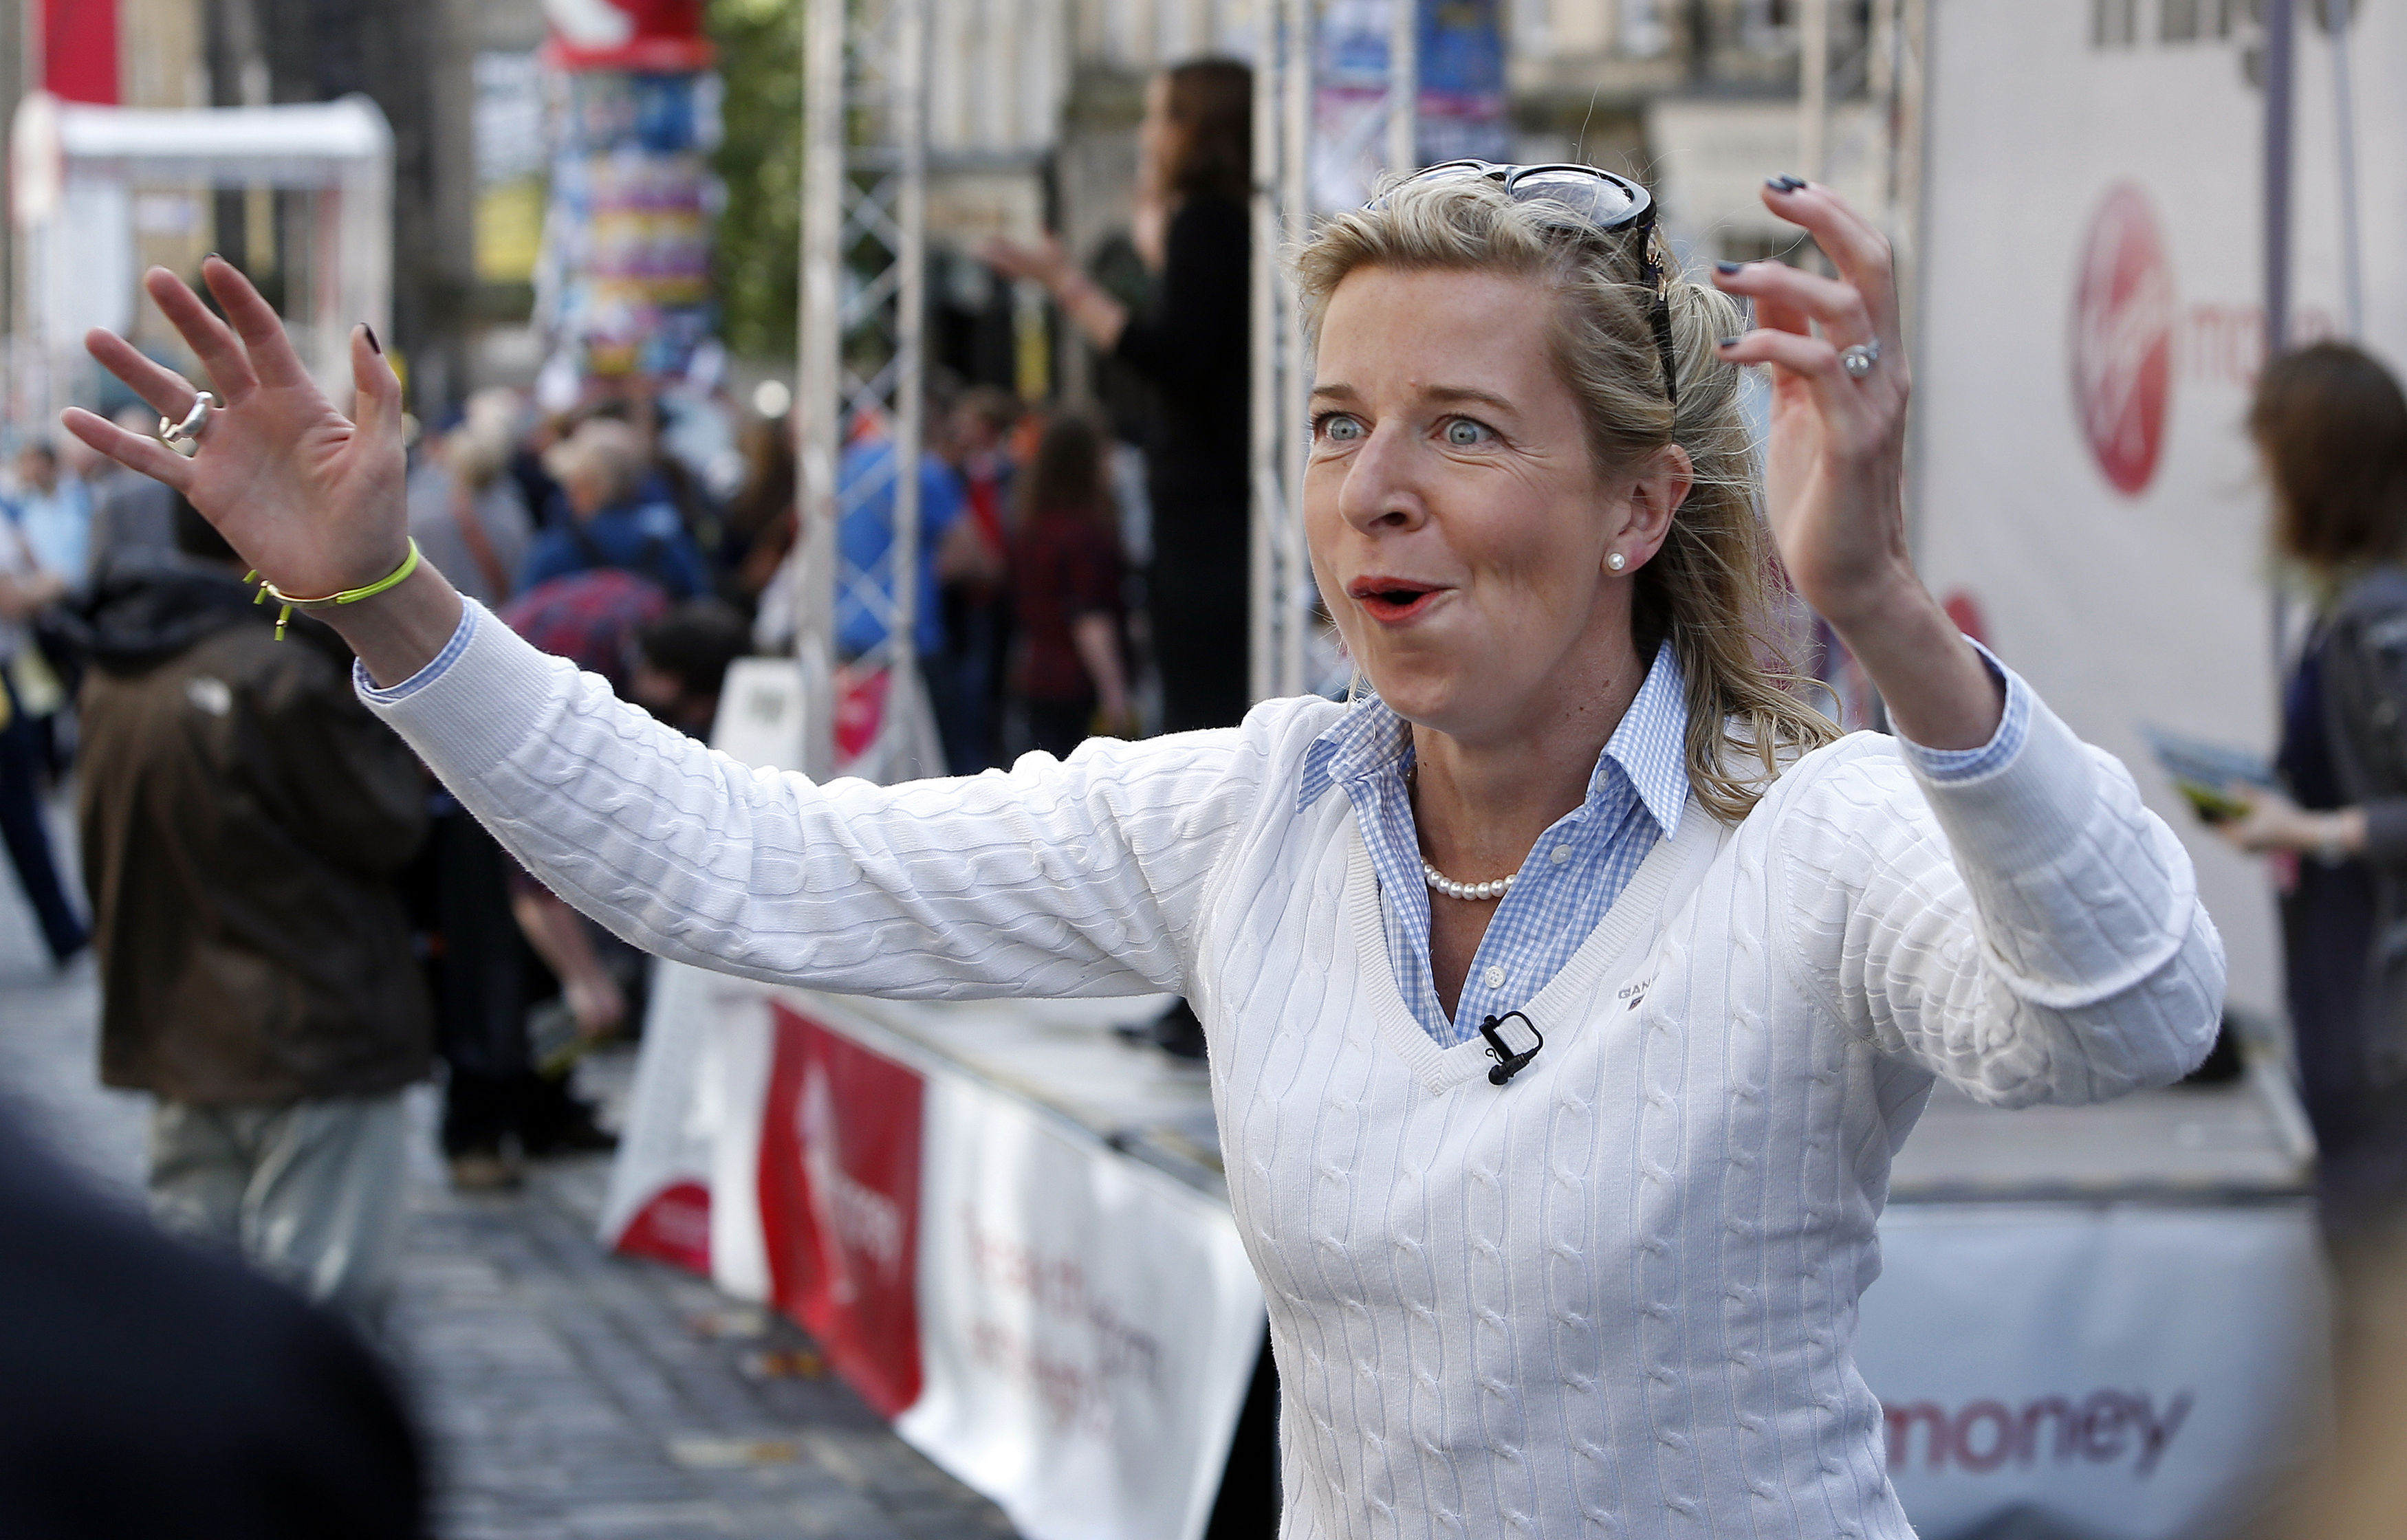 PA 23910461 Katie Hopkins Proves Once Again How Awful She Is After Nice Attack Comments